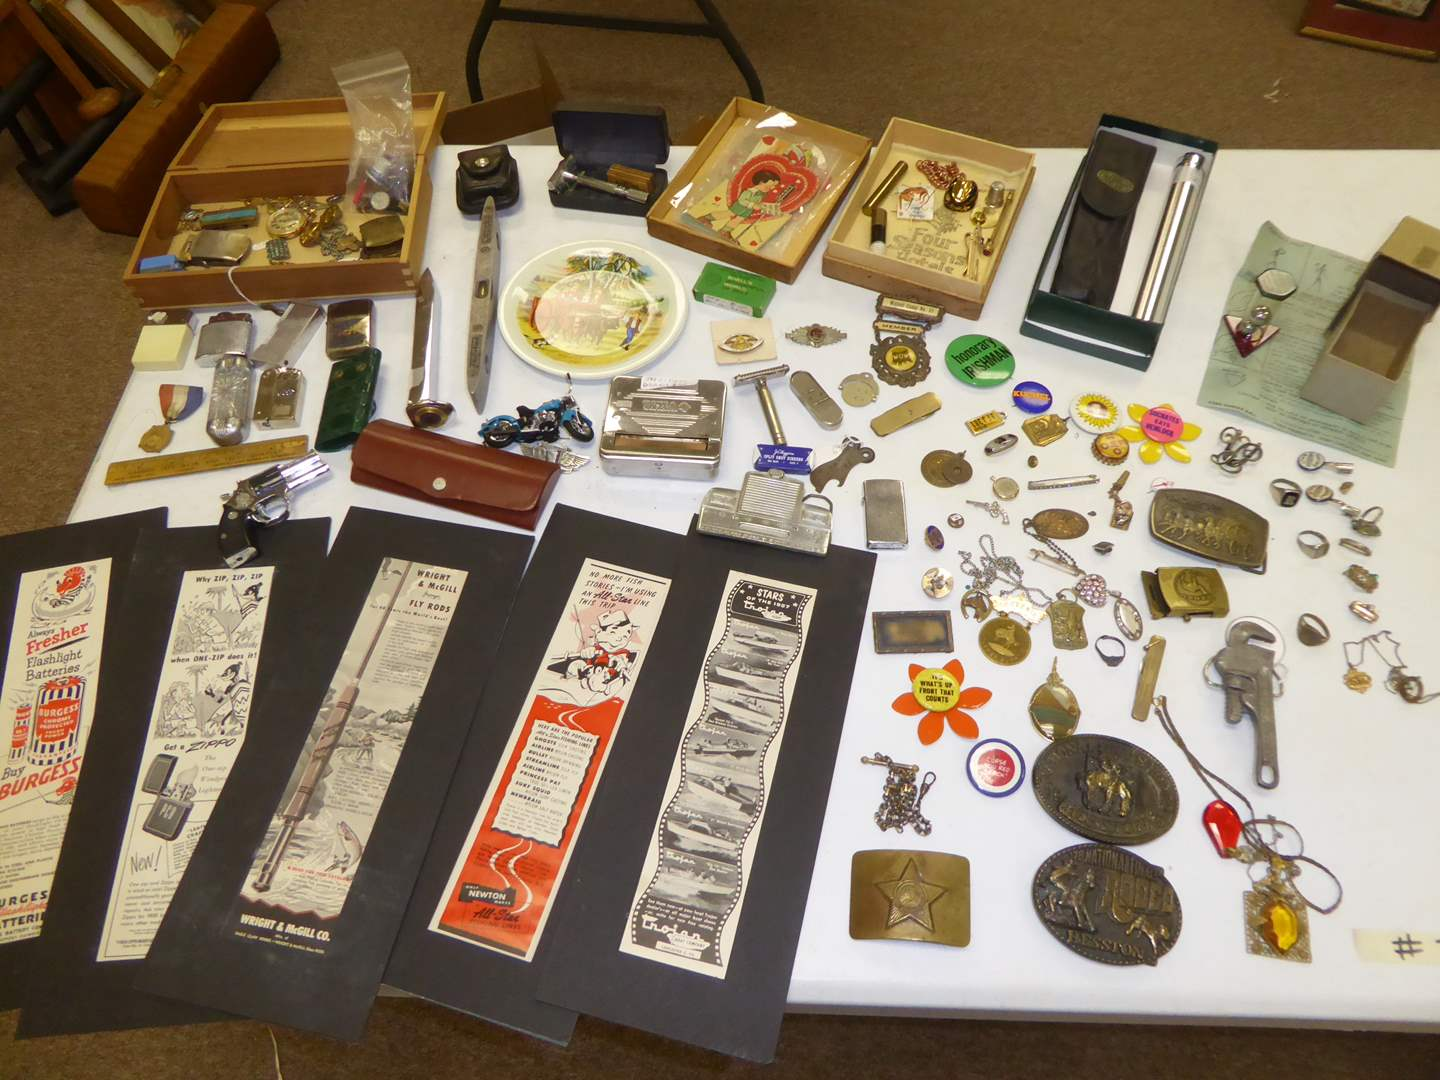 Lot # 30 - Vintage Advertisements, Jewelry & Collectibles  (main image)